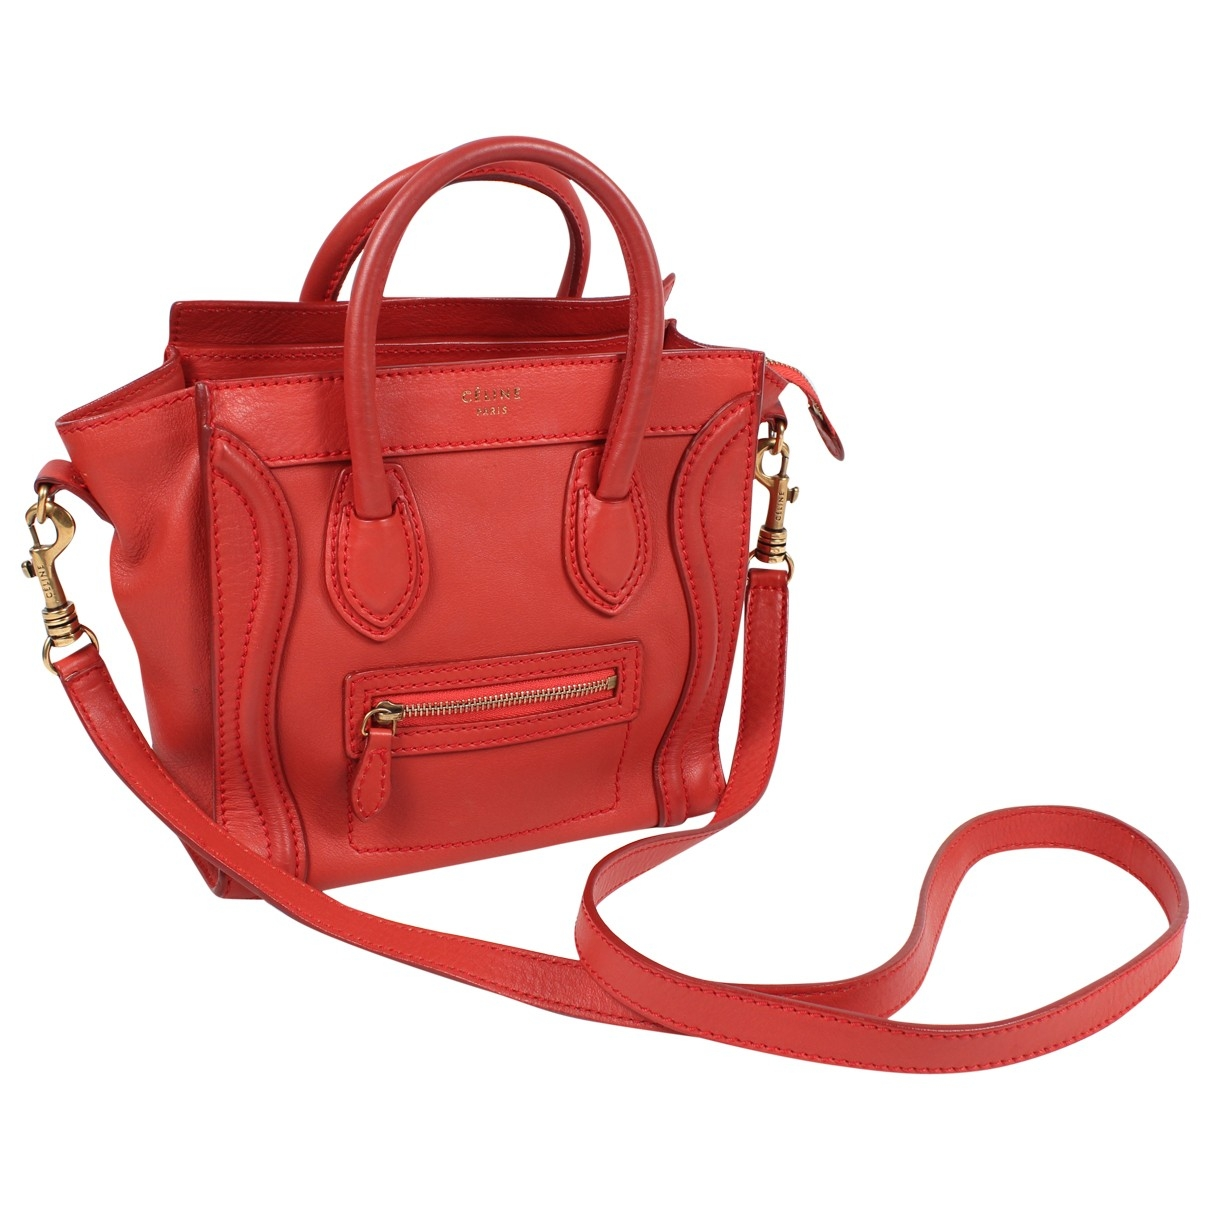 Celine Nano Luggage Red Leather handbag for Women \N